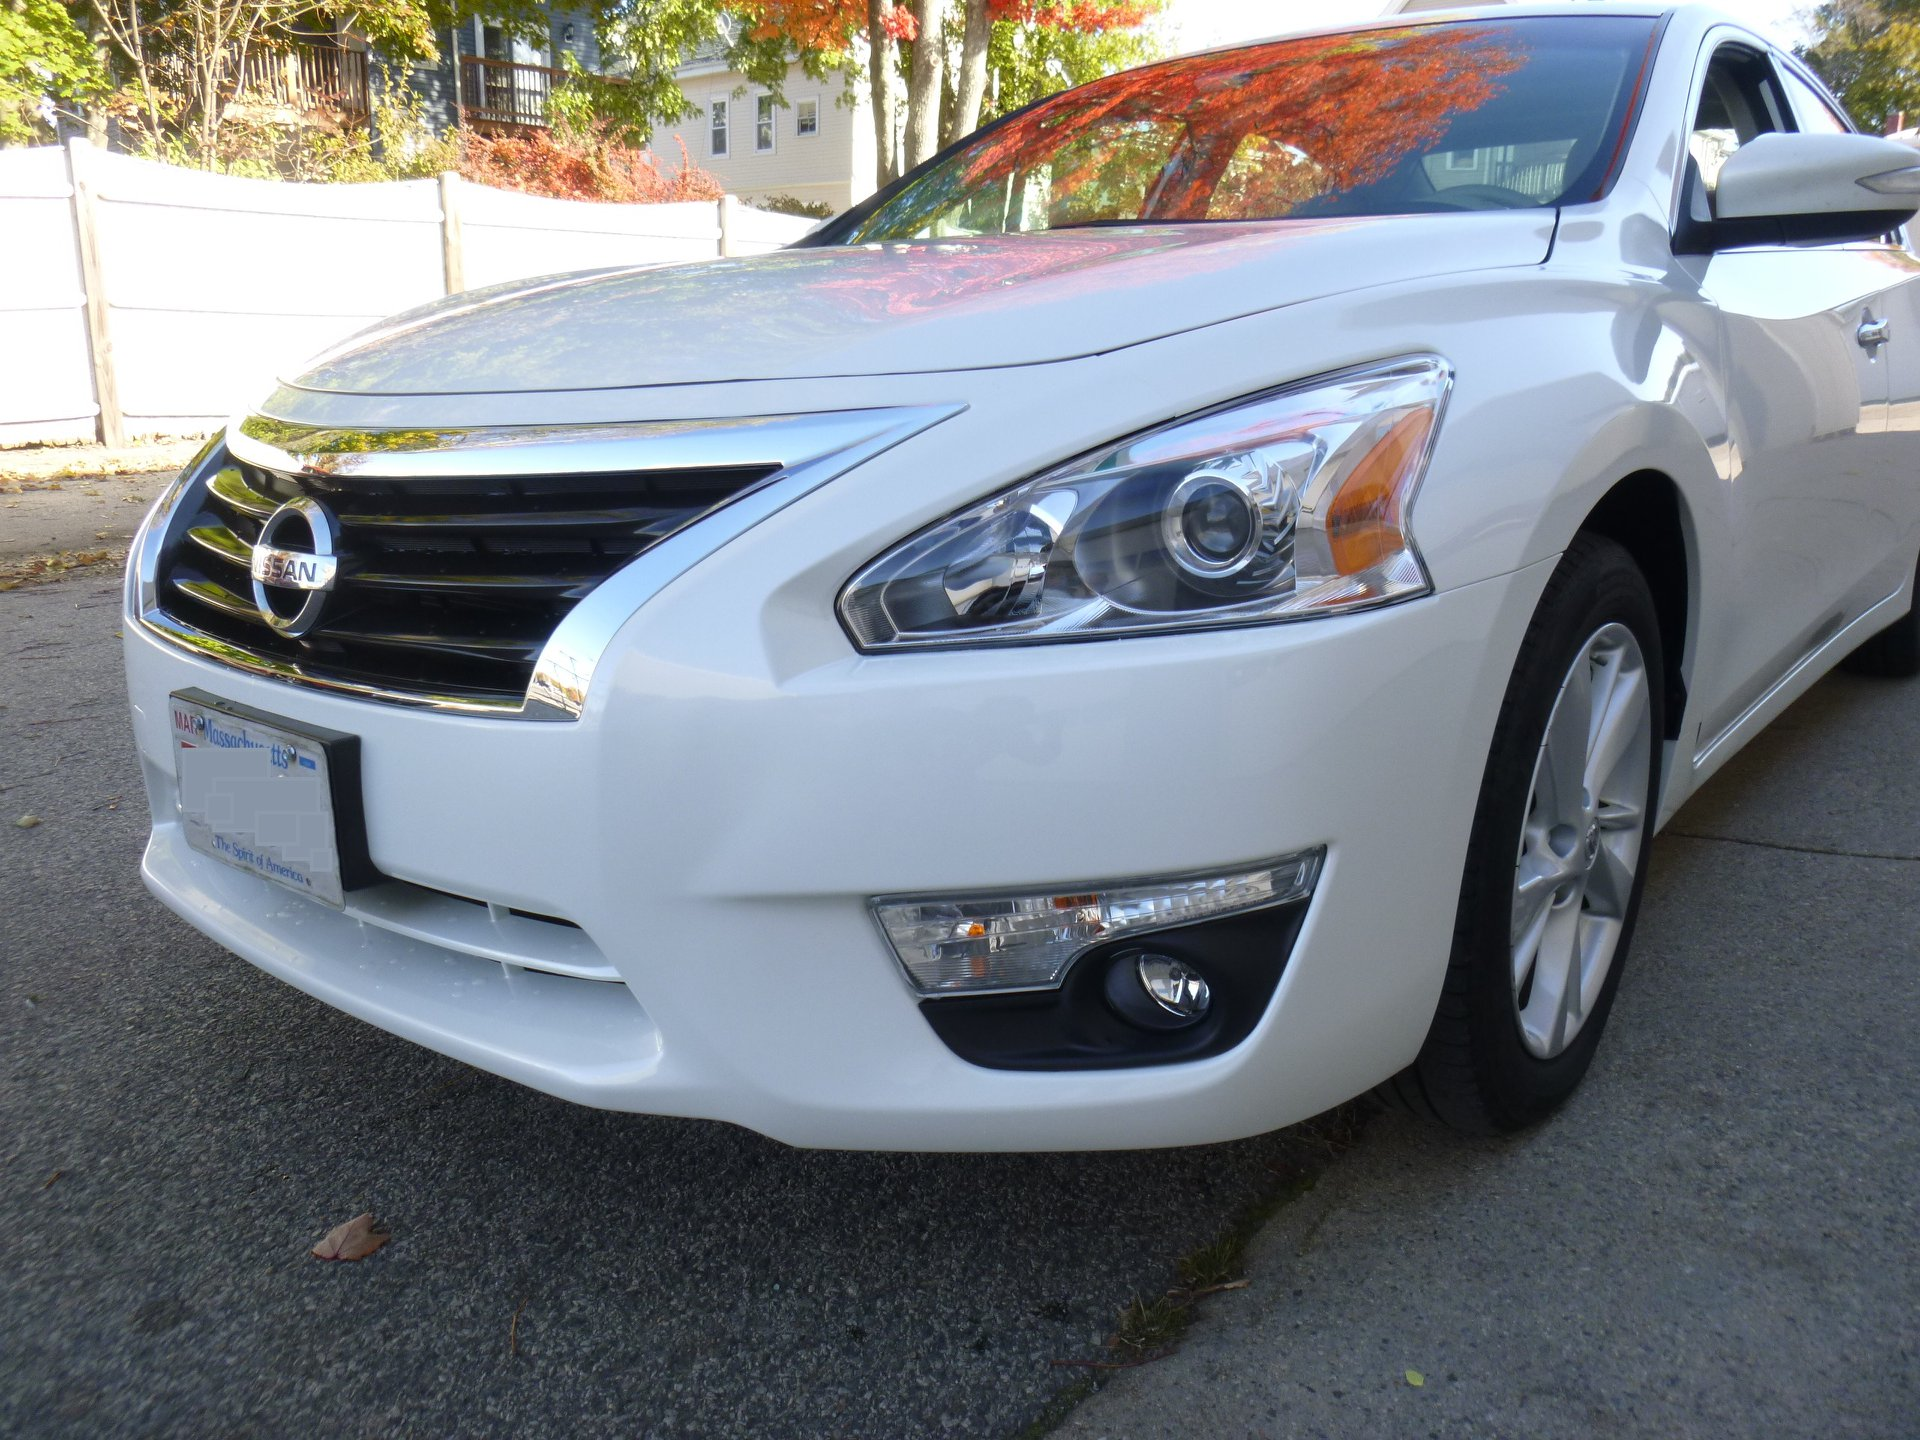 WHITE ALTIMA AFTER